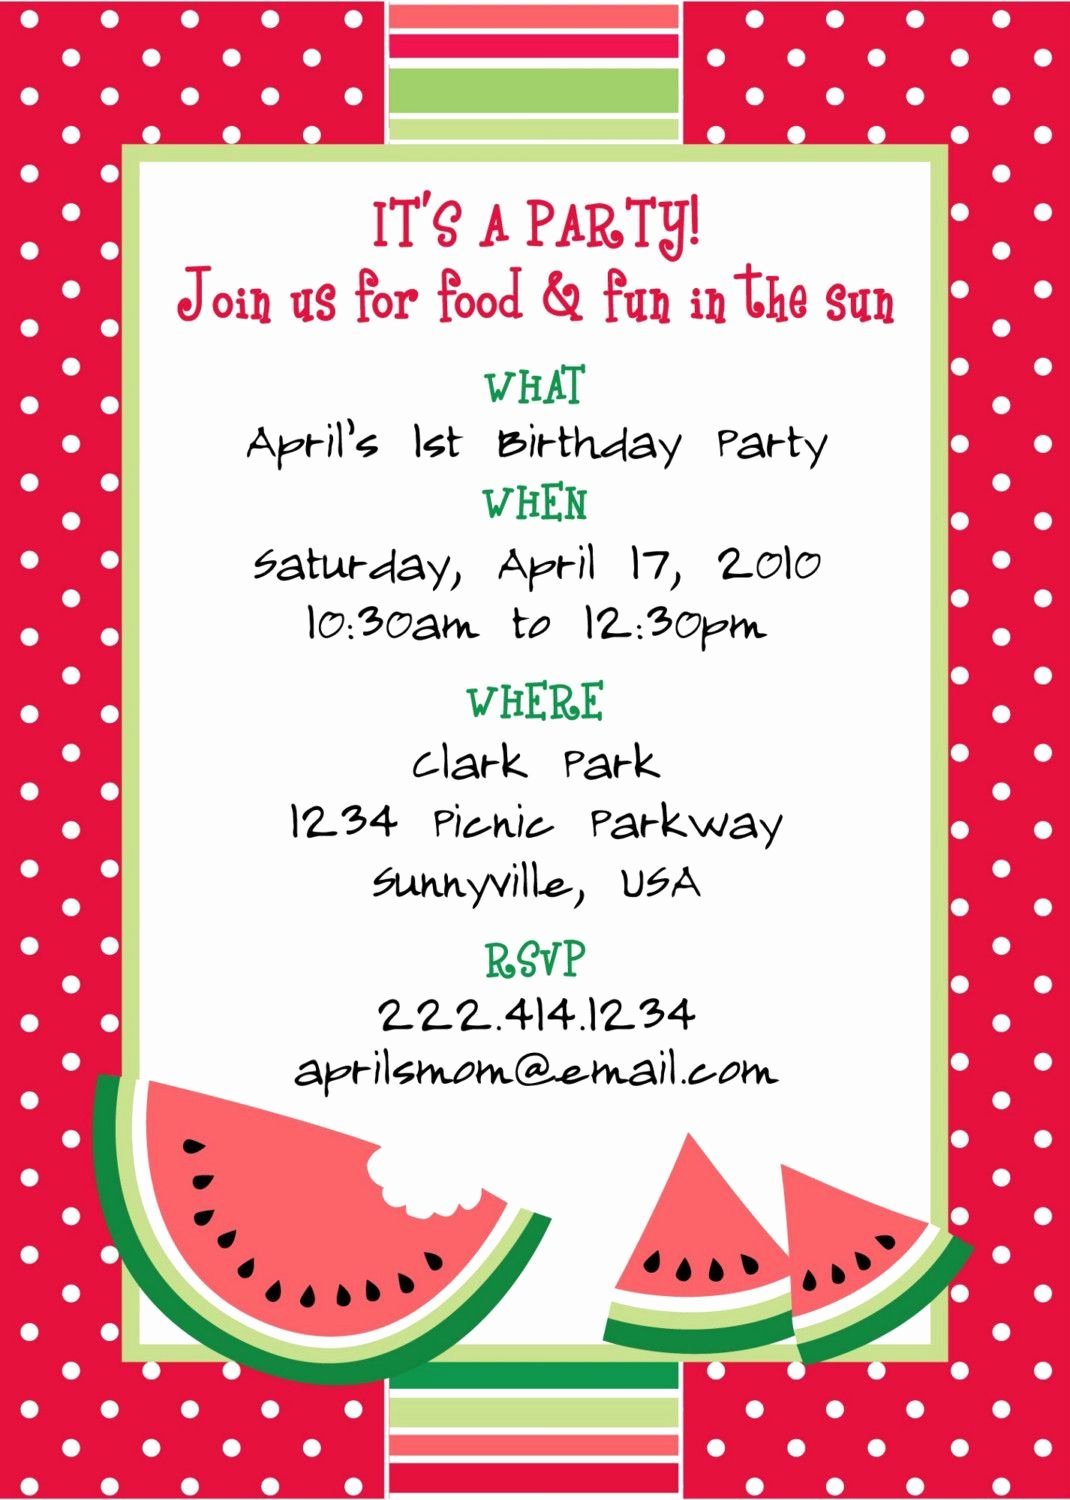 Picnic Invitation Template Free Best Of Picnic Invitations Pdf Invitation Templates He S 1 Pinterest